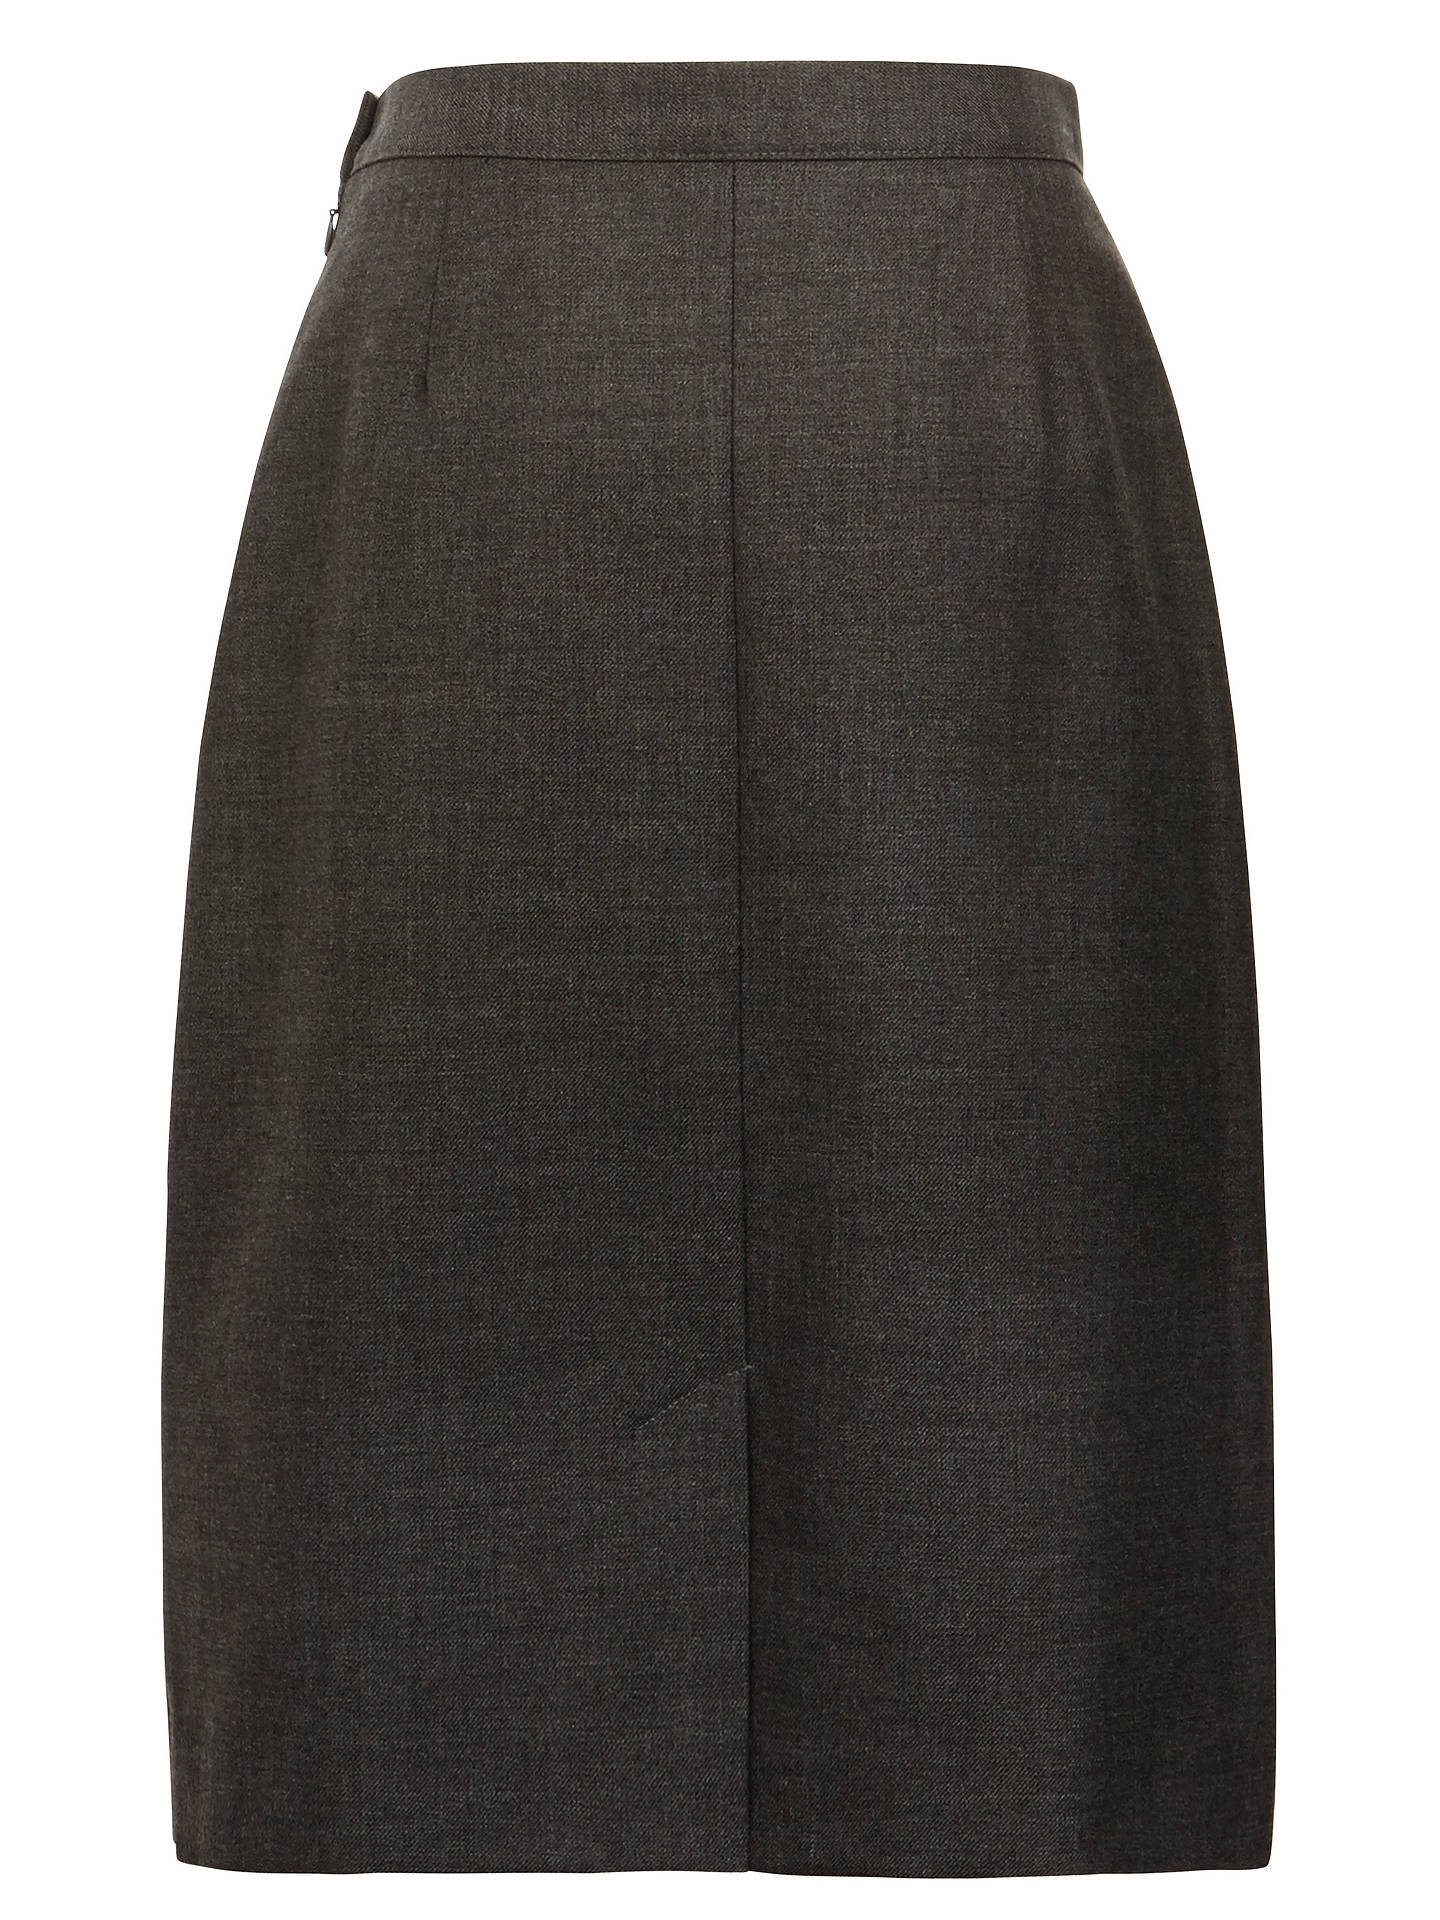 Buy School Wool Mix Inverted Pleat Skirt, Grey, 11 years Online at johnlewis.com